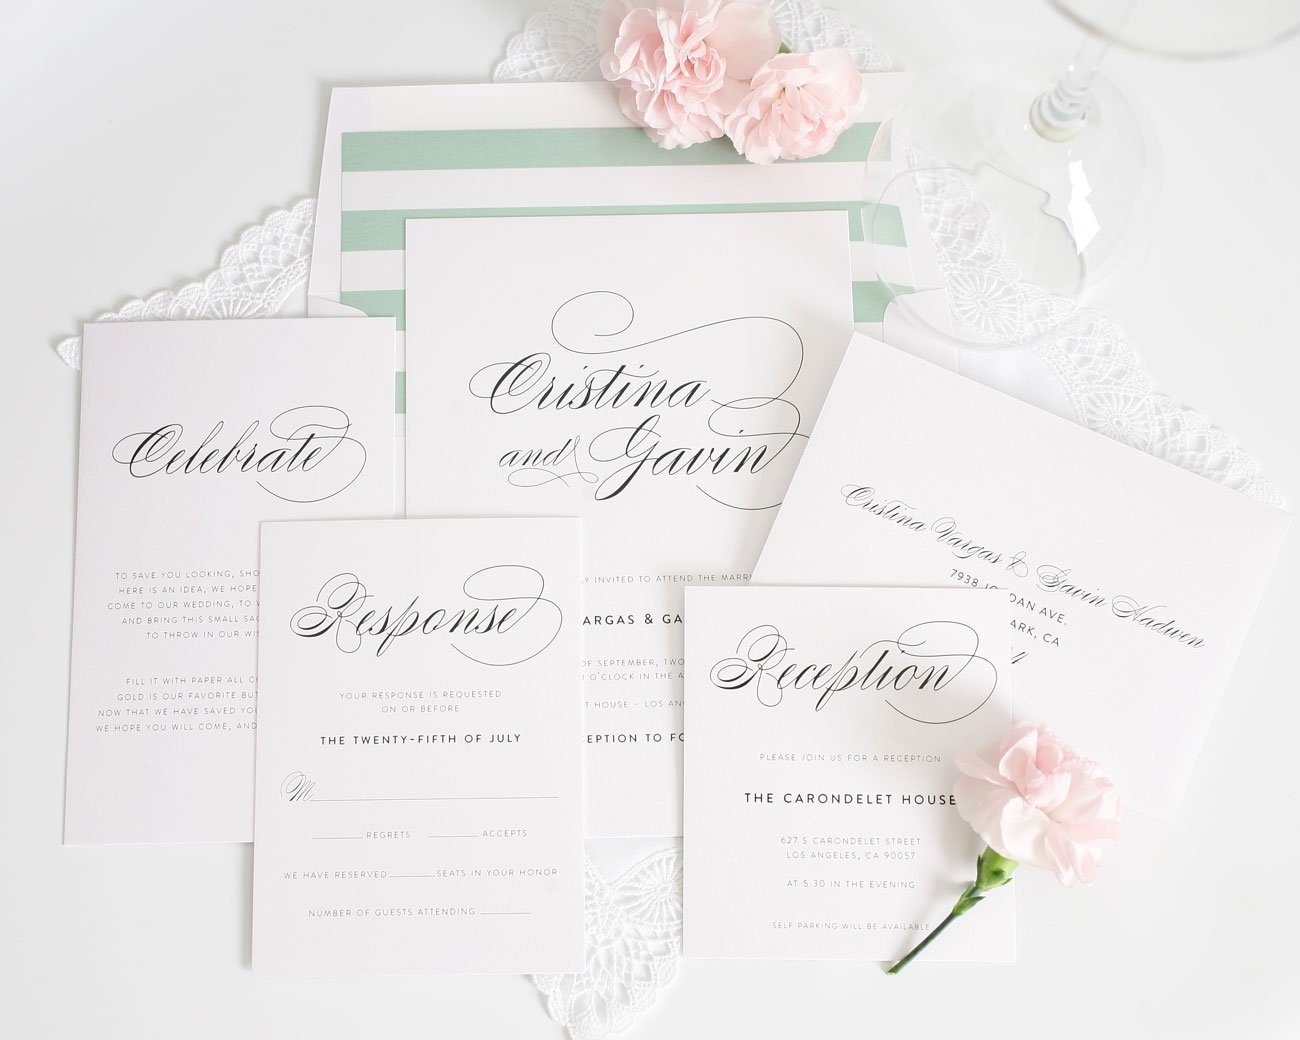 Elegant wedding invitations with jade stripes